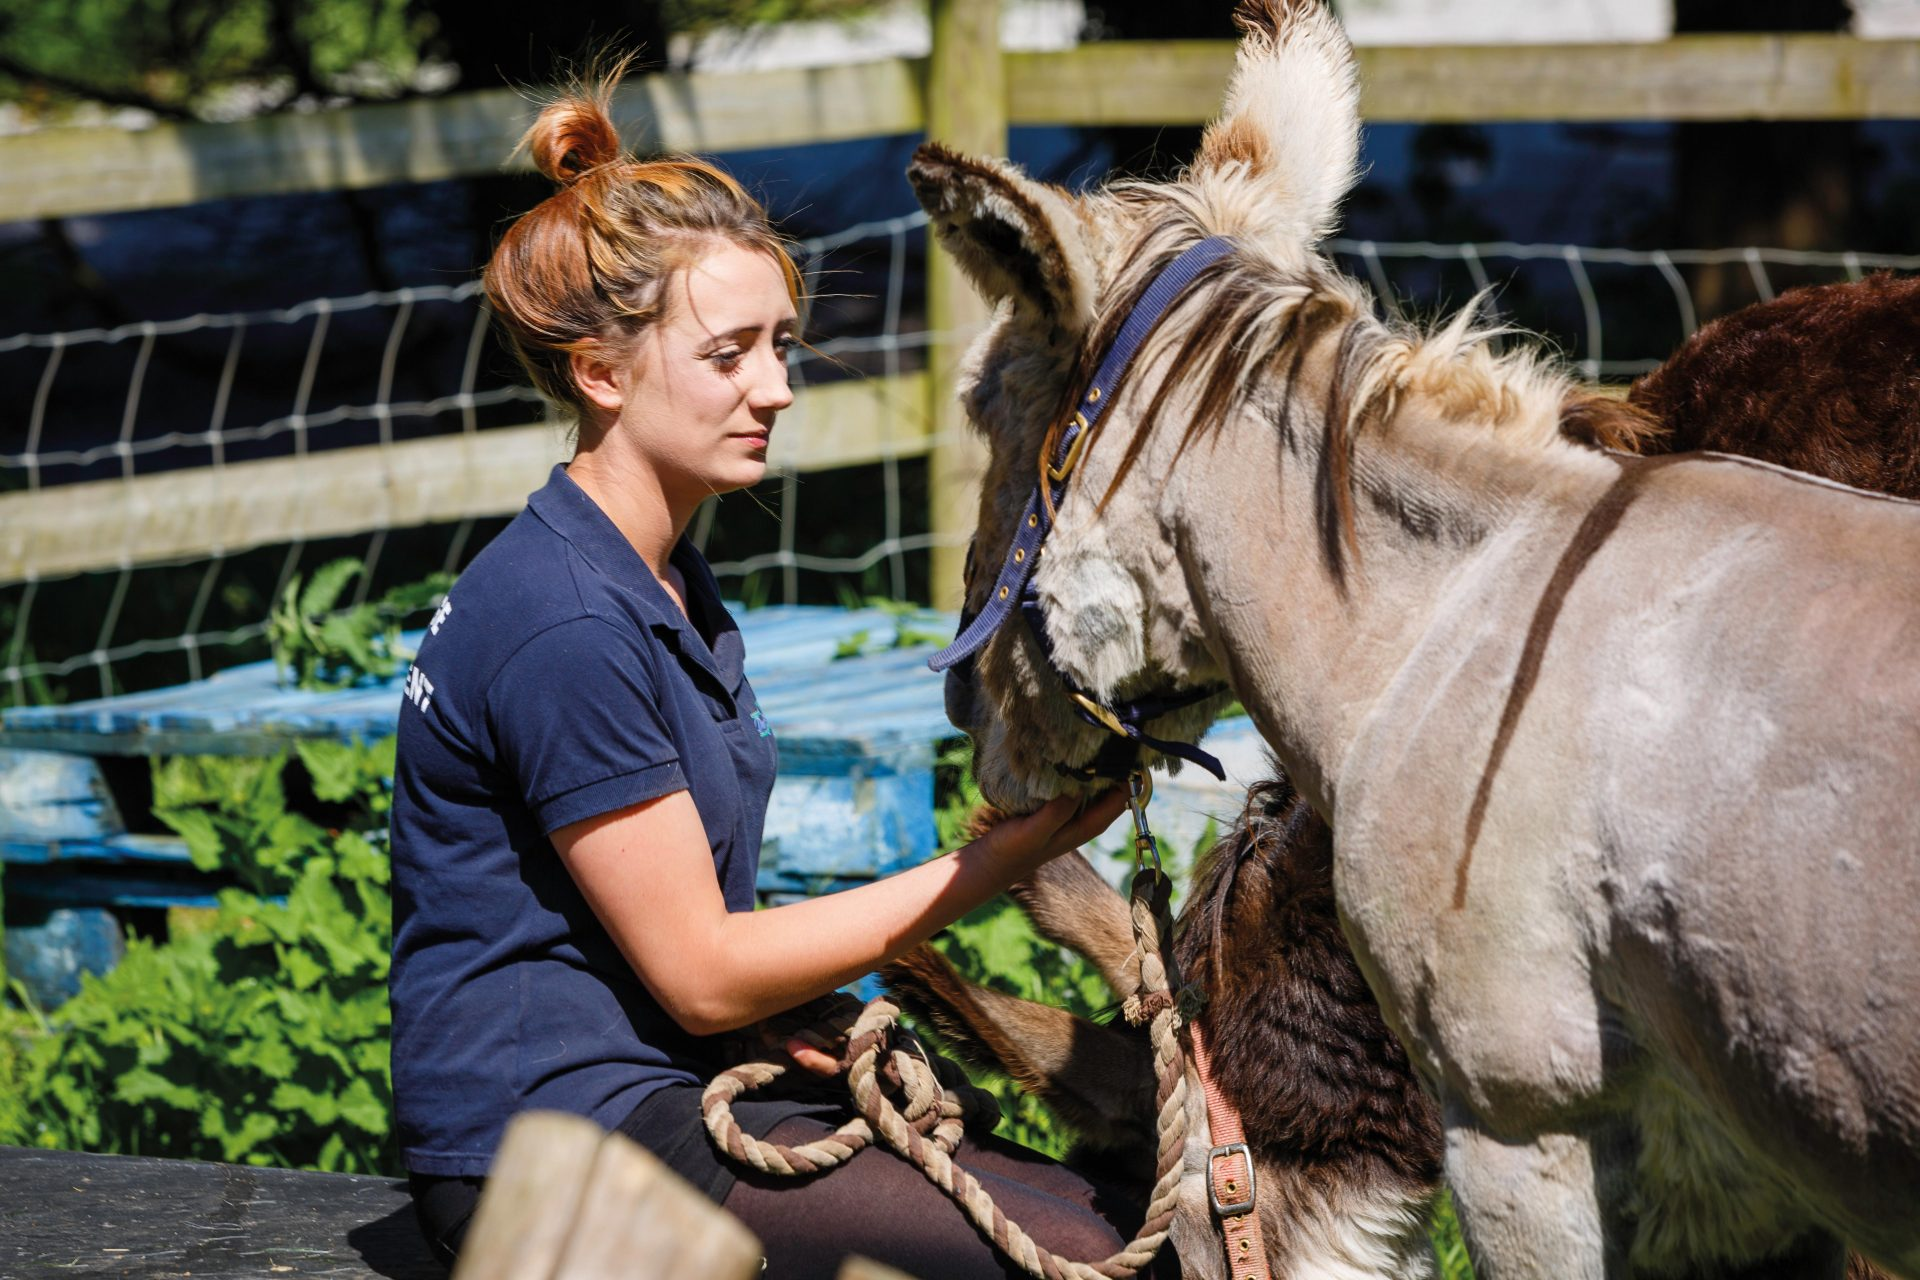 Equine student caring for a donkey